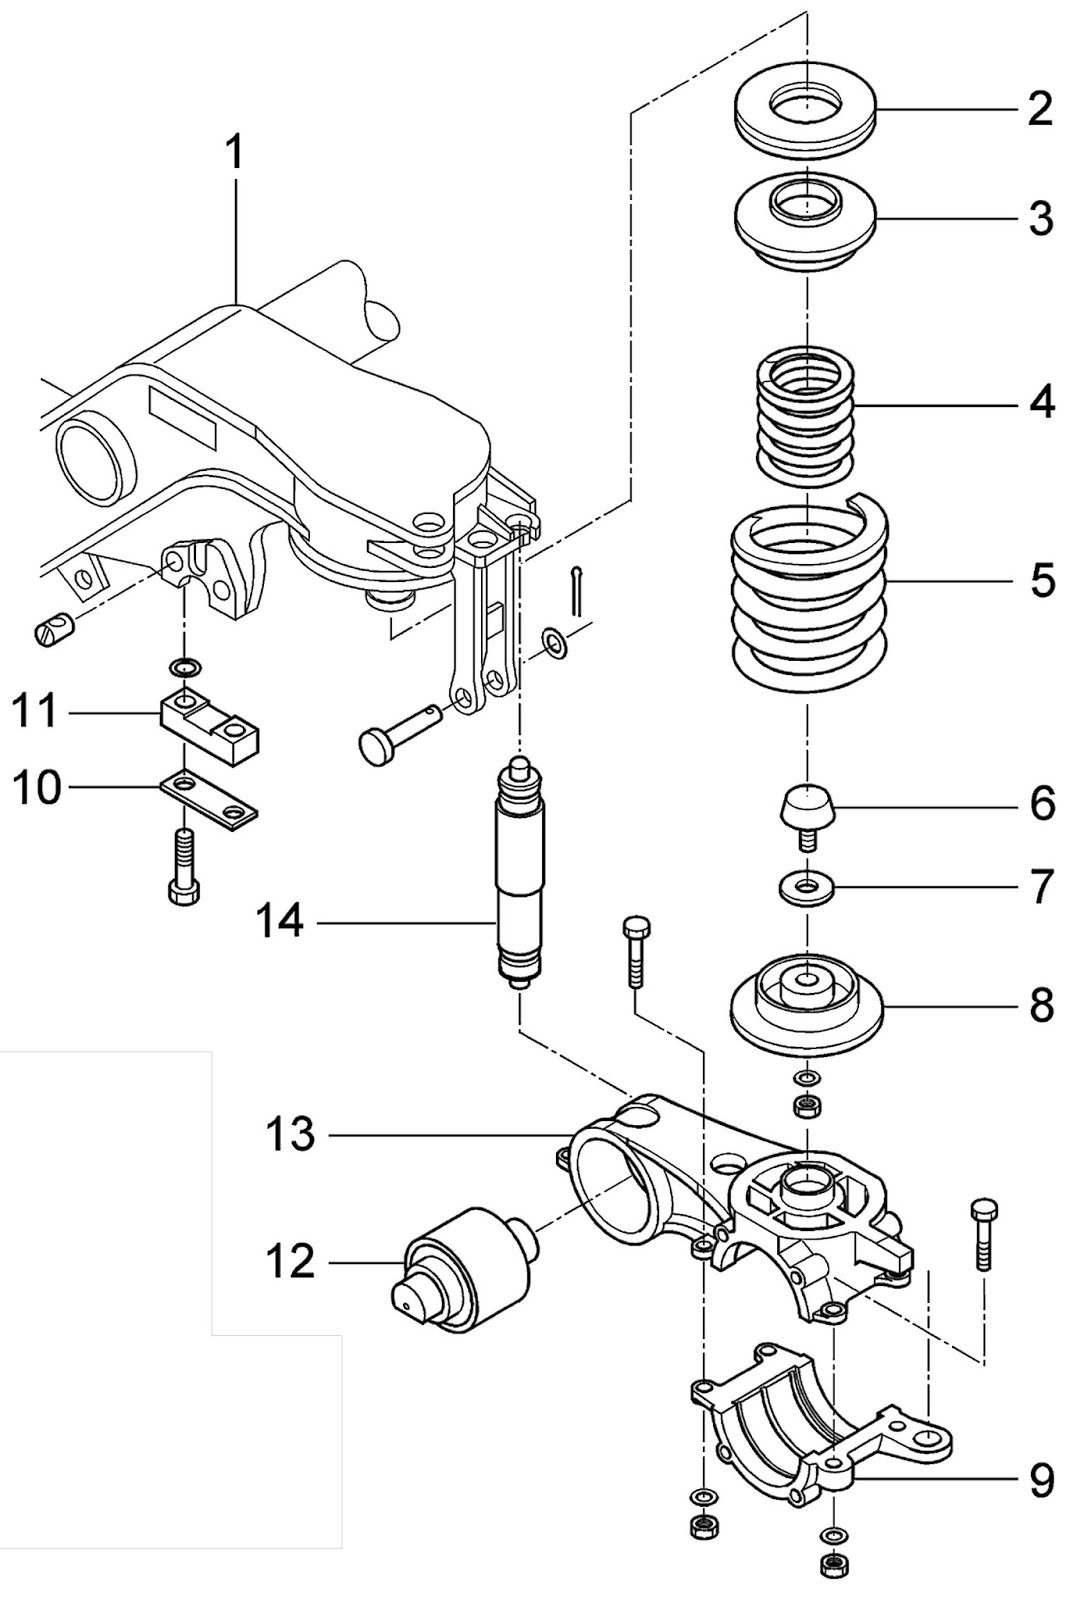 medium resolution of primary suspension is implemented by two units of two steel coil springs internal 4 and external 5 laid out on the control arm upper part 13 by a